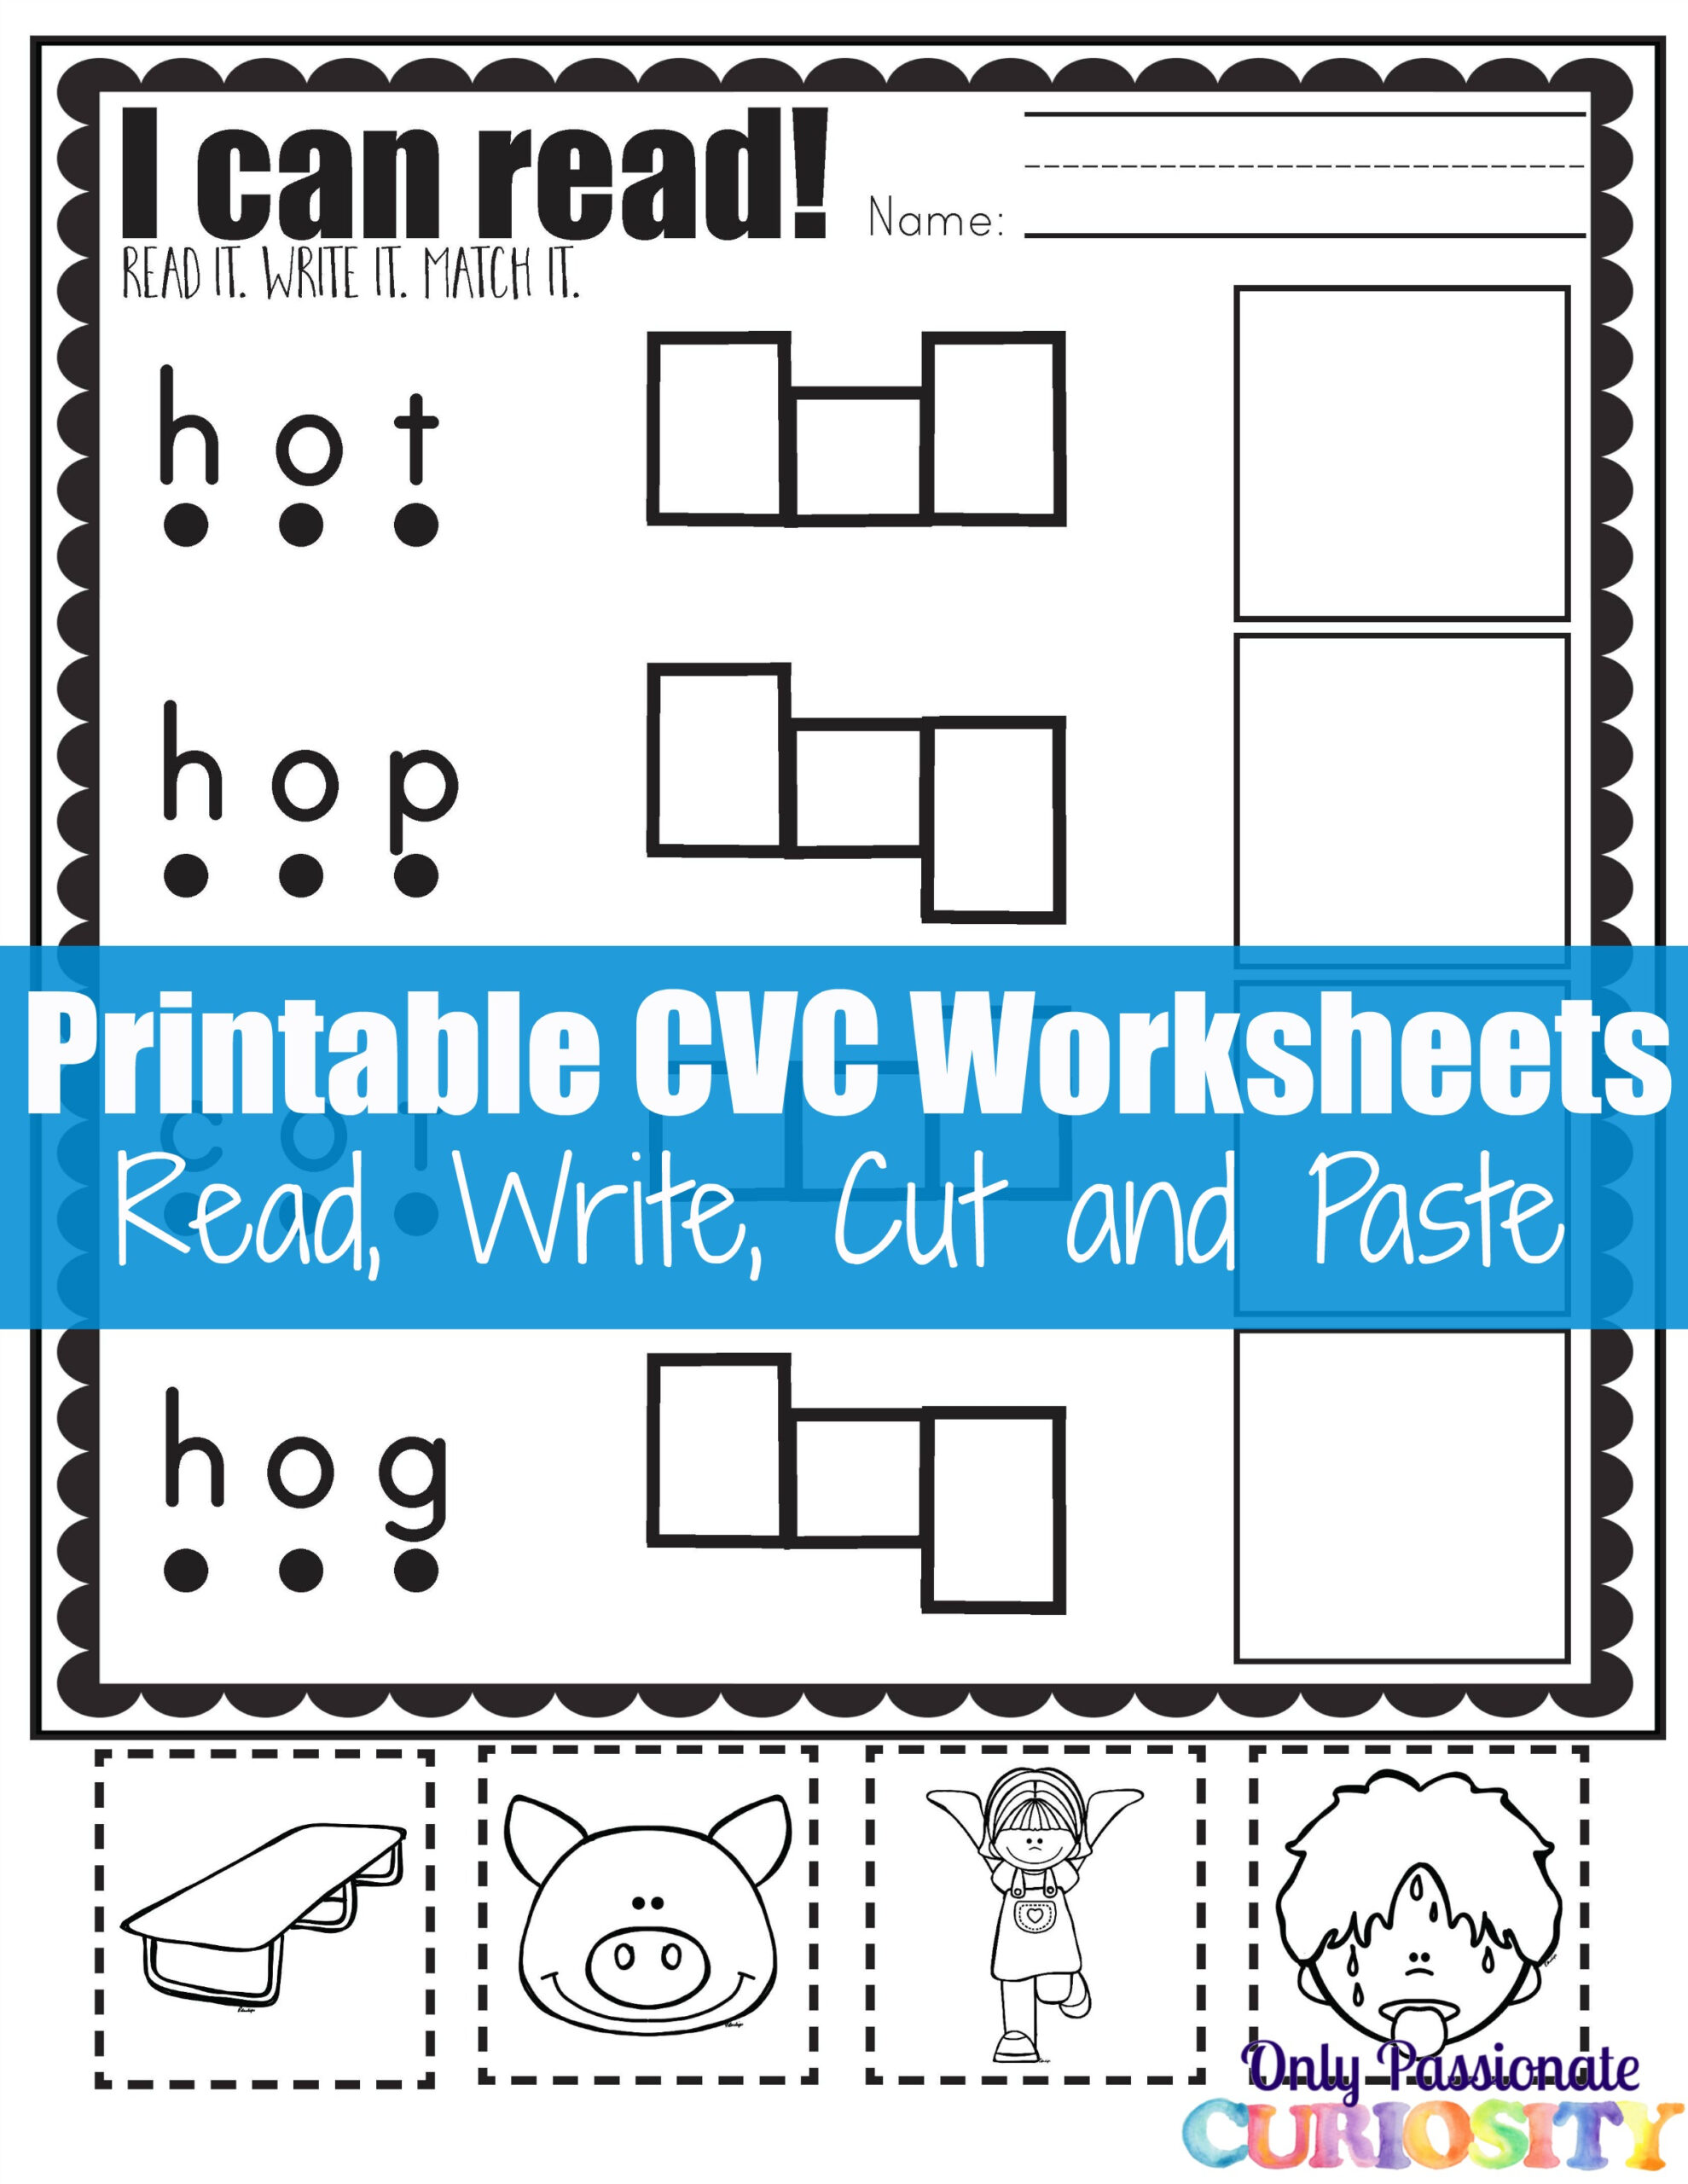 Cvc Worksheets: Cut And Paste Letter O - Only Passionate inside Letter H Worksheets Cut And Paste